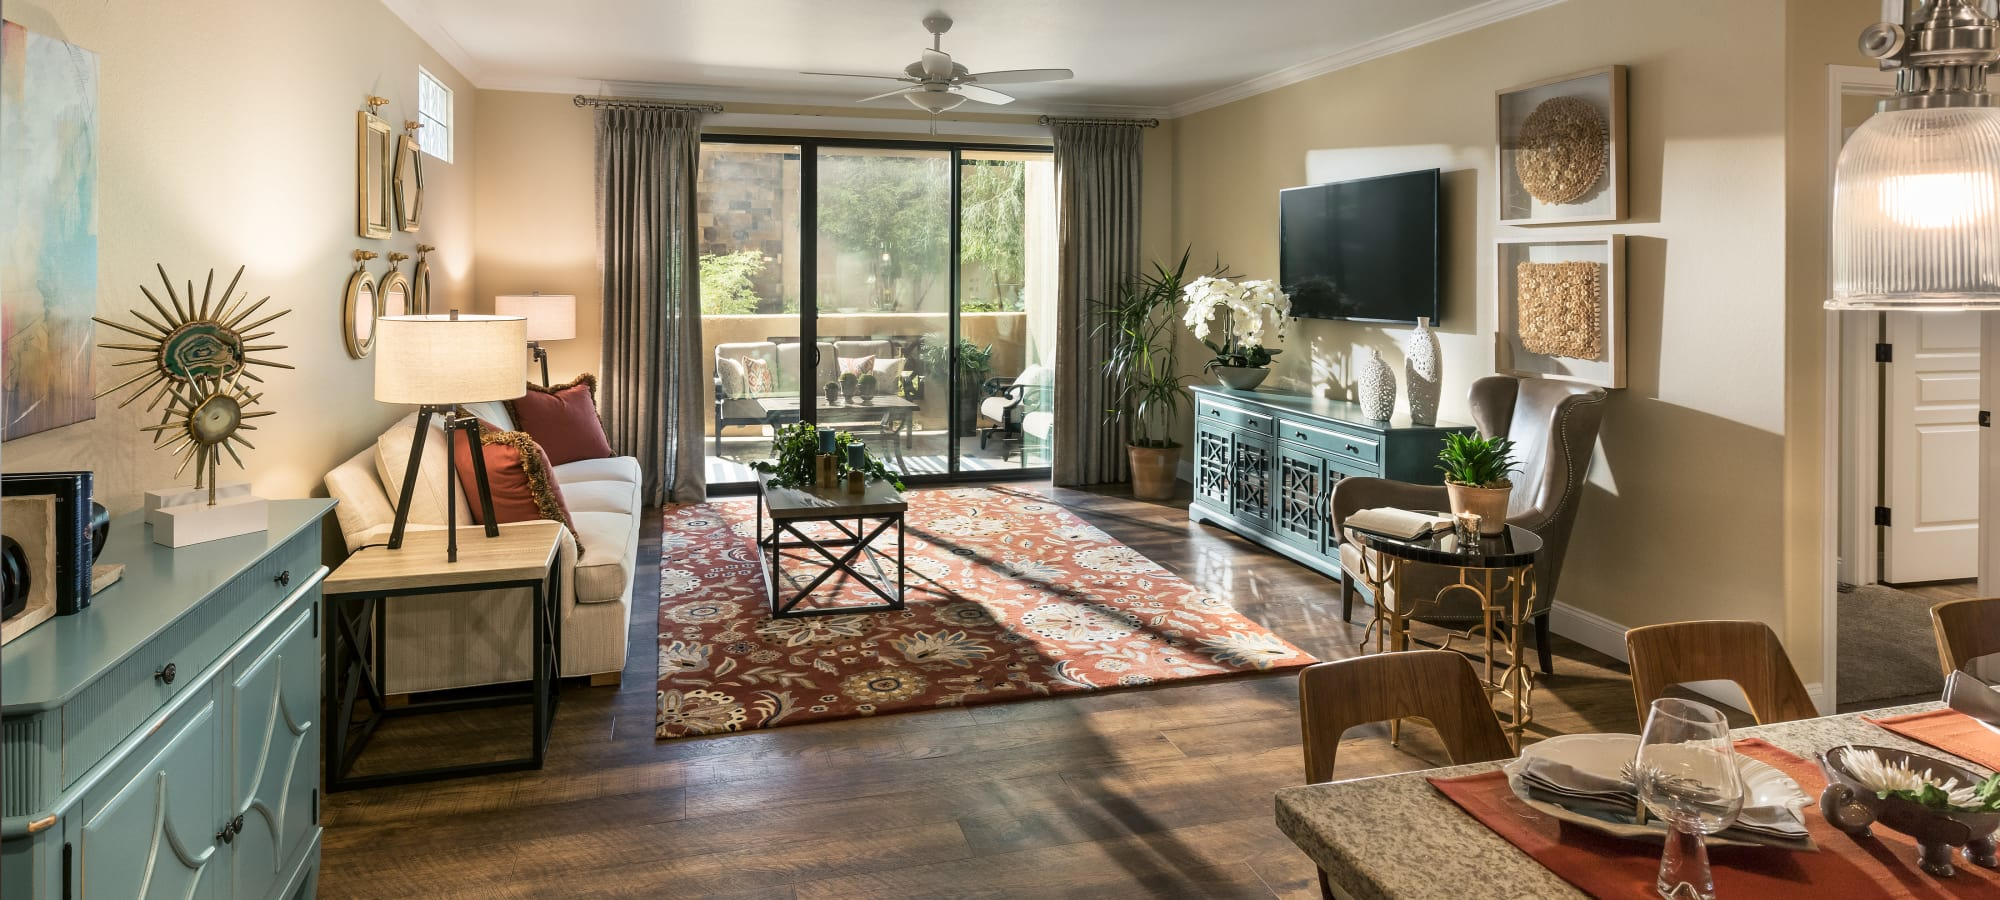 Beautiful model living room with excellent decor at San Portales in Scottsdale, Arizona